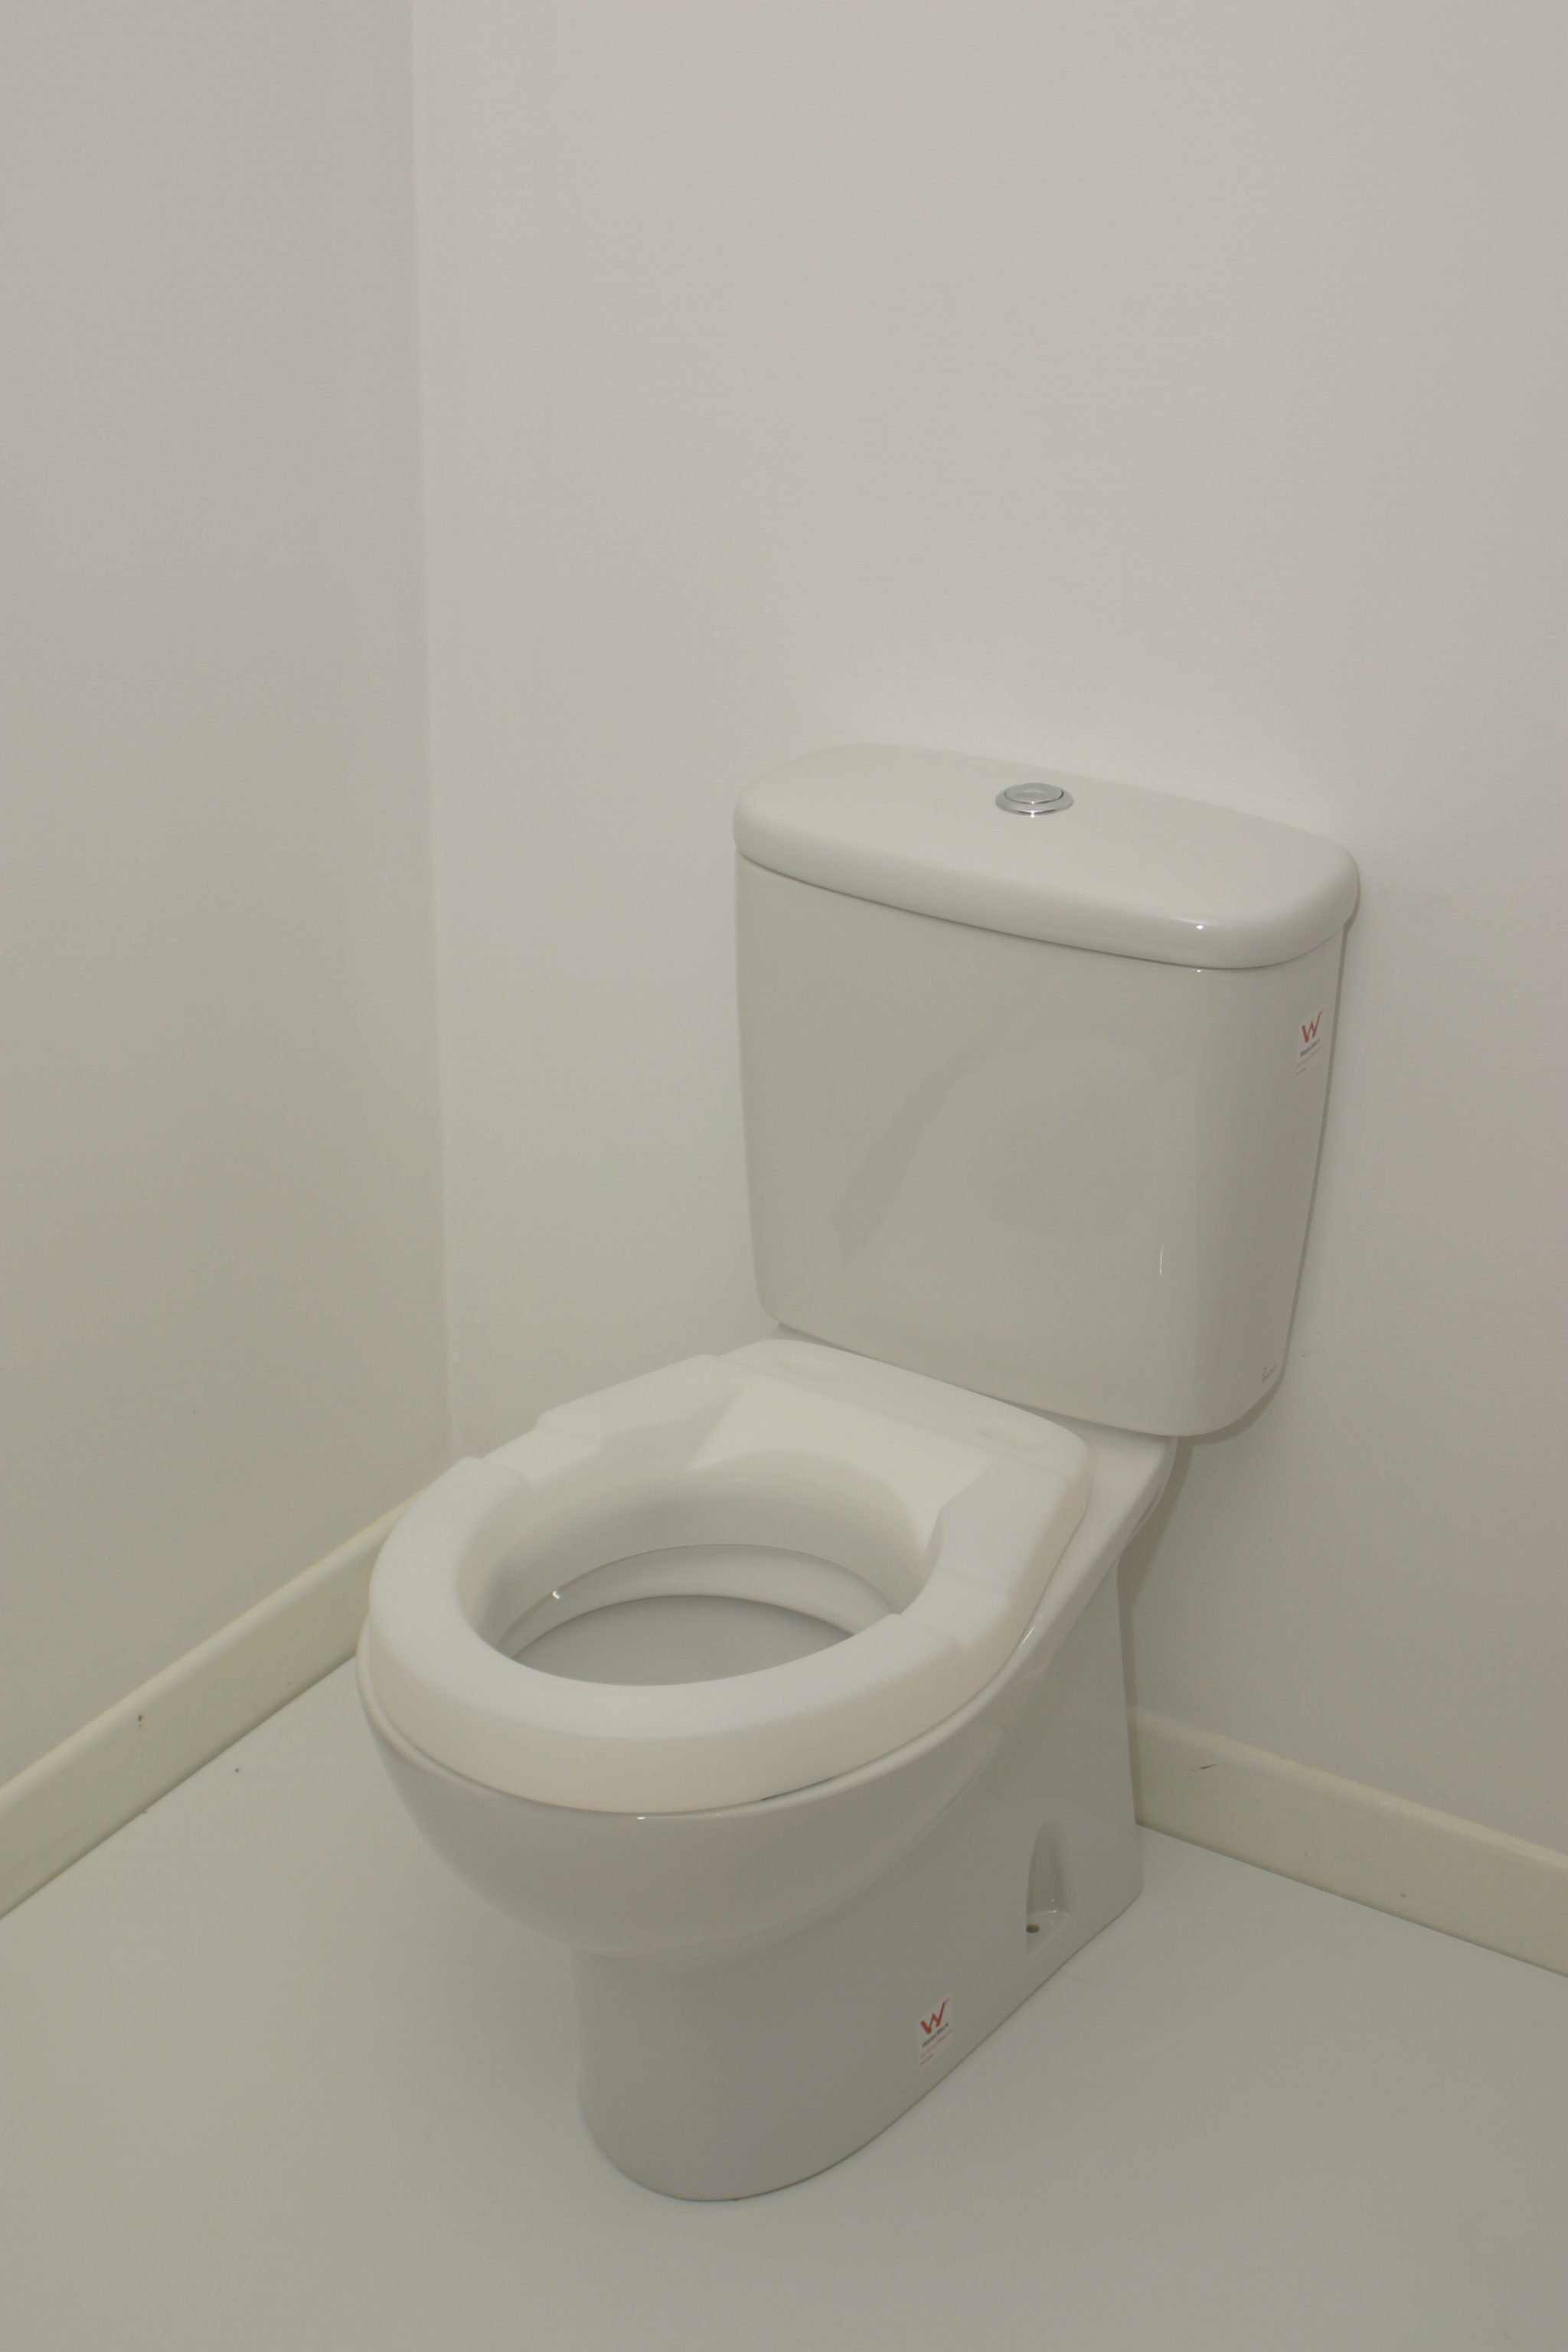 Throne Toilet Seat Raiser Independent Living